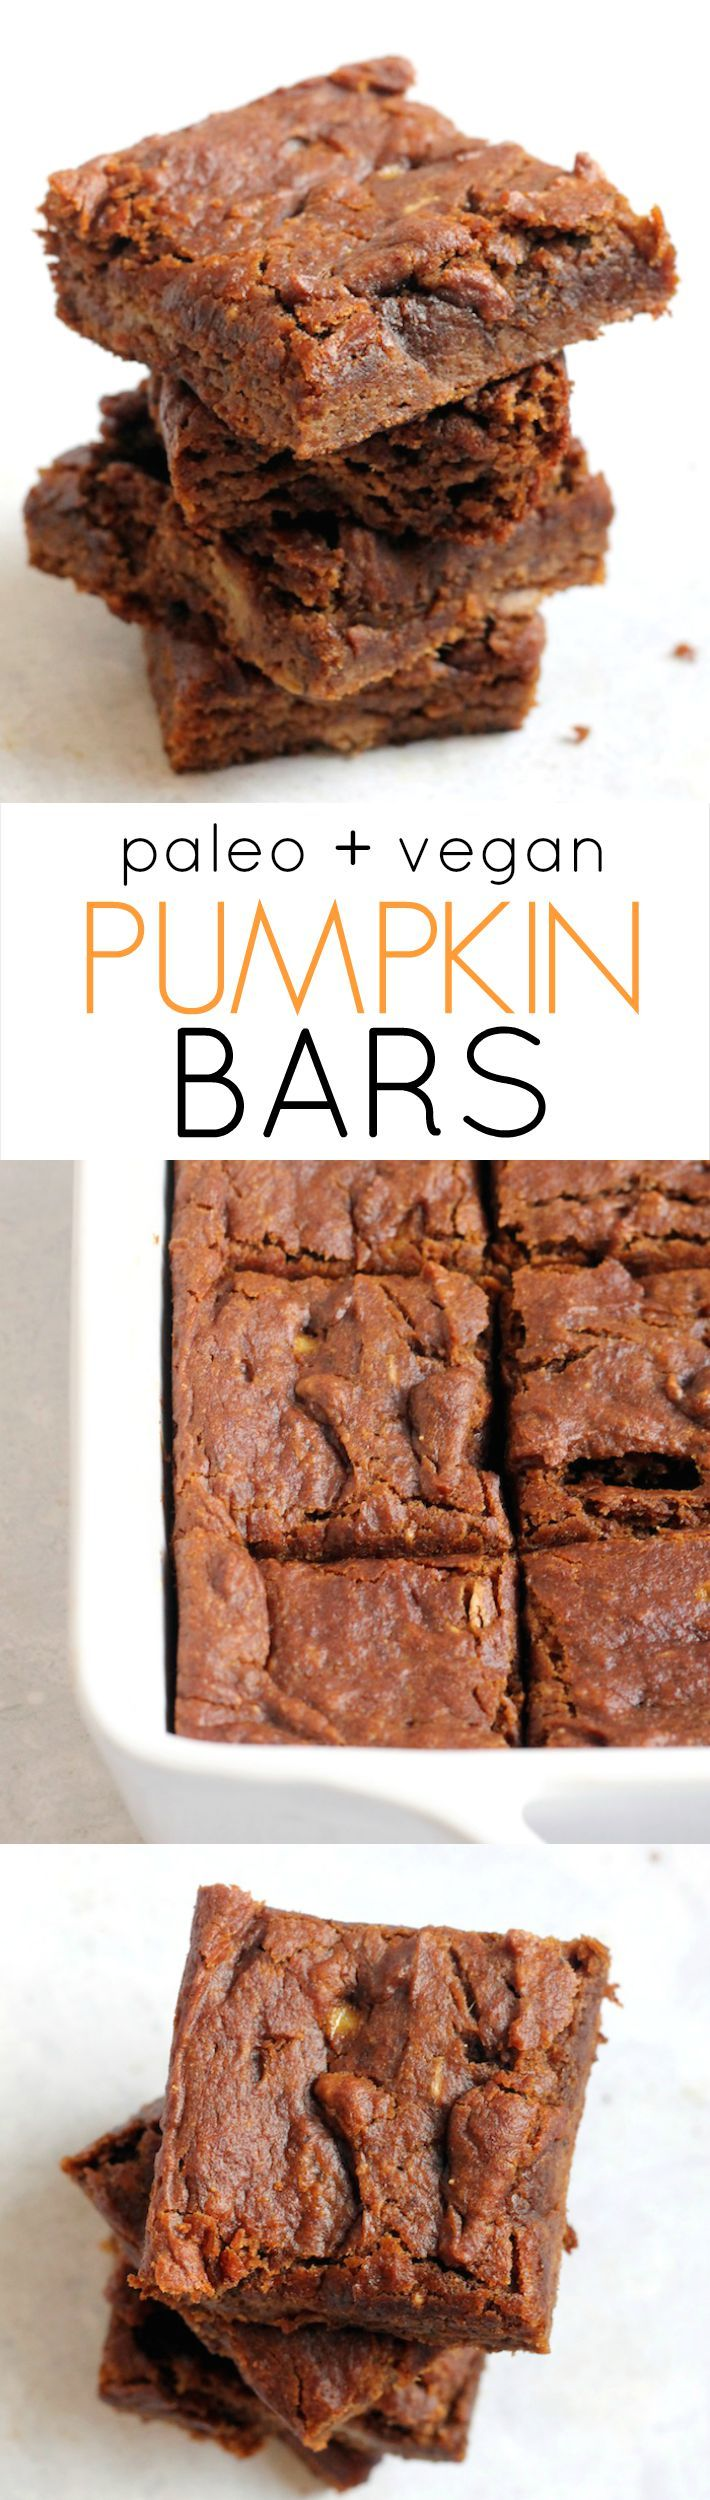 Paleo Pumpkin Bars are lightly sweetened, super moist, vegan, and can be enjoyed without any of the guilt! One bowl and no flour, butter, or refined sugar.